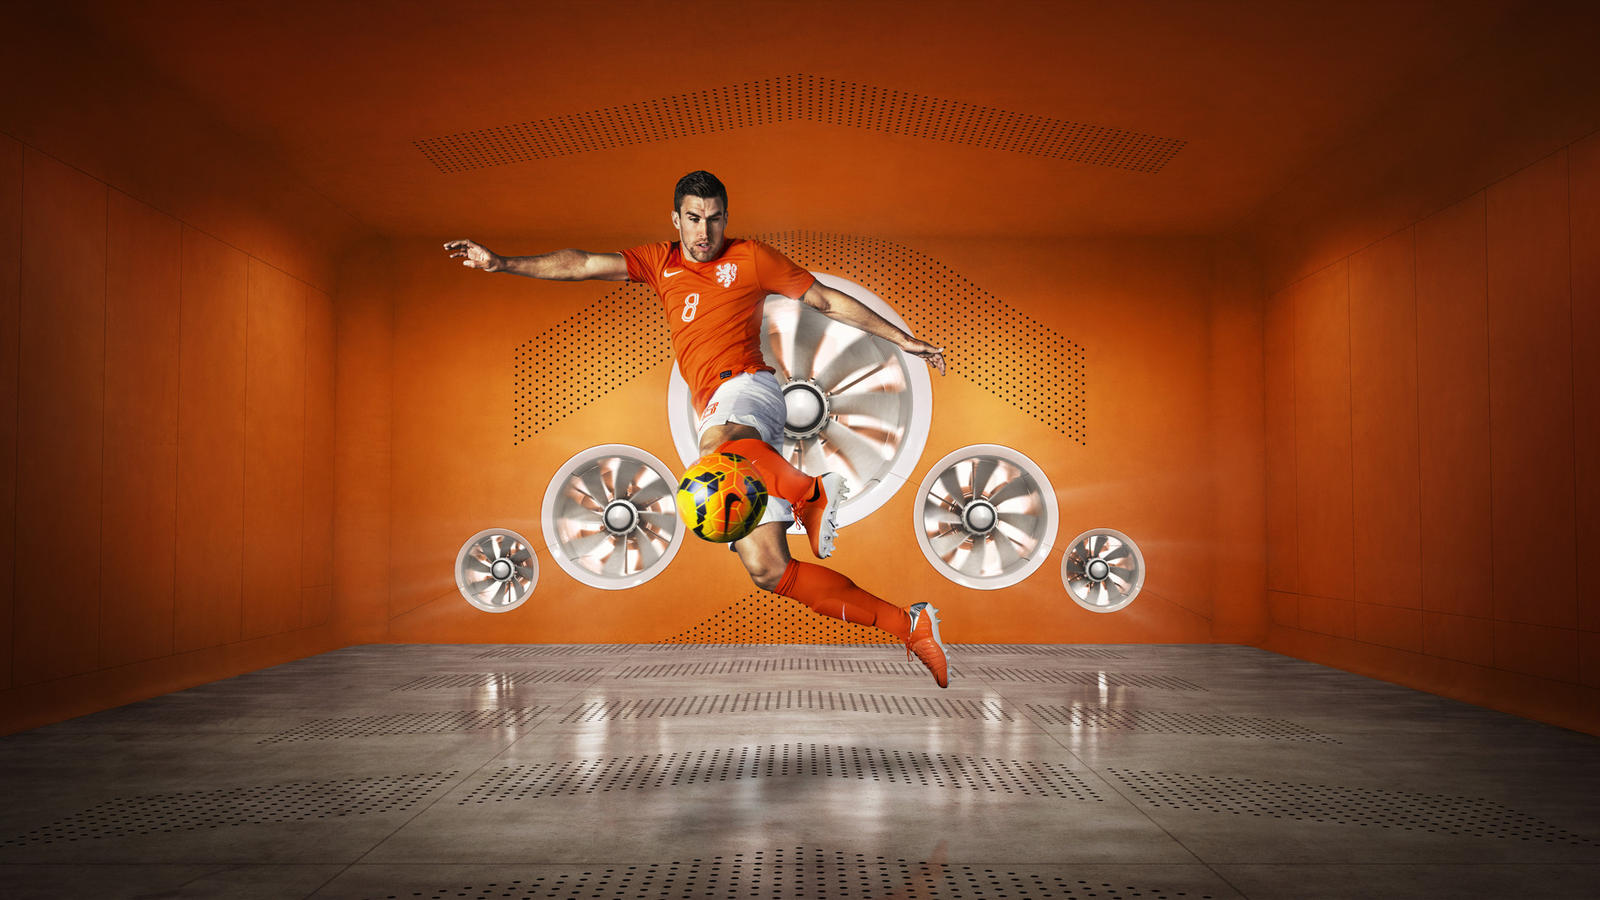 Nike Wallpaper 3d Nike News Netherlands Unveils 125th Anniversary Dutch